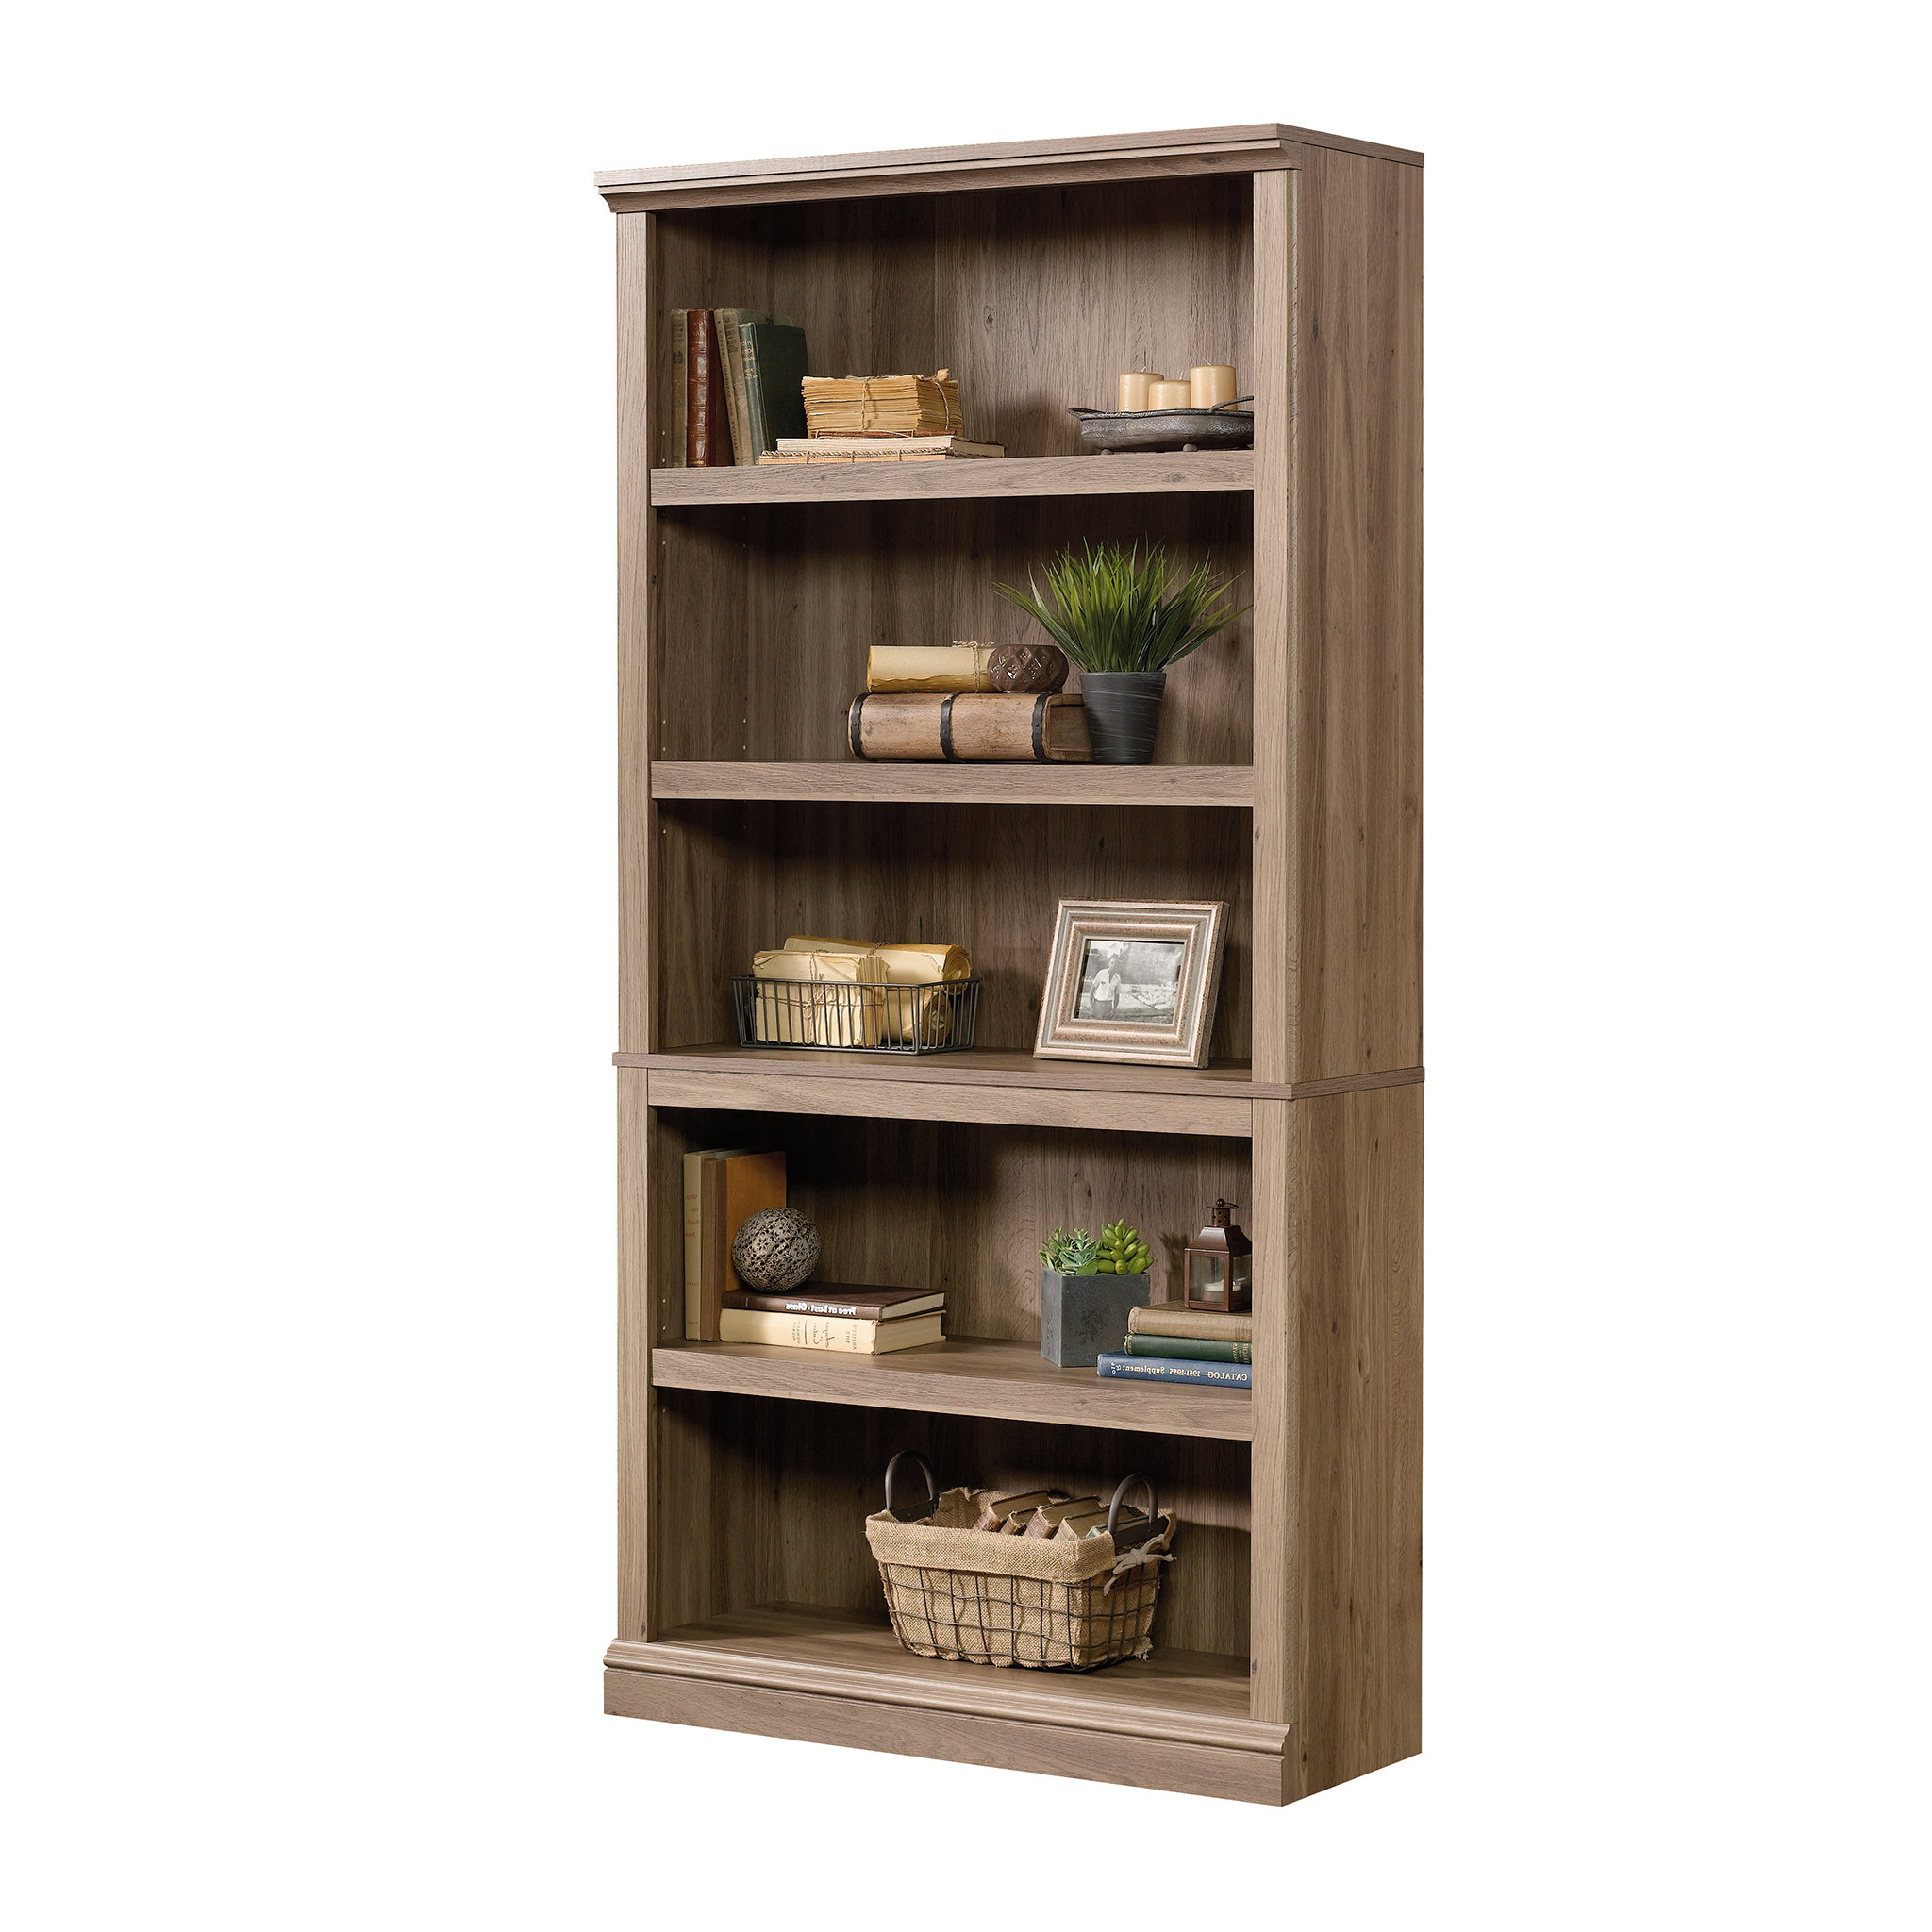 Abigail Standard Bookcase Intended For Newest Salina Standard Bookcases (Gallery 7 of 20)